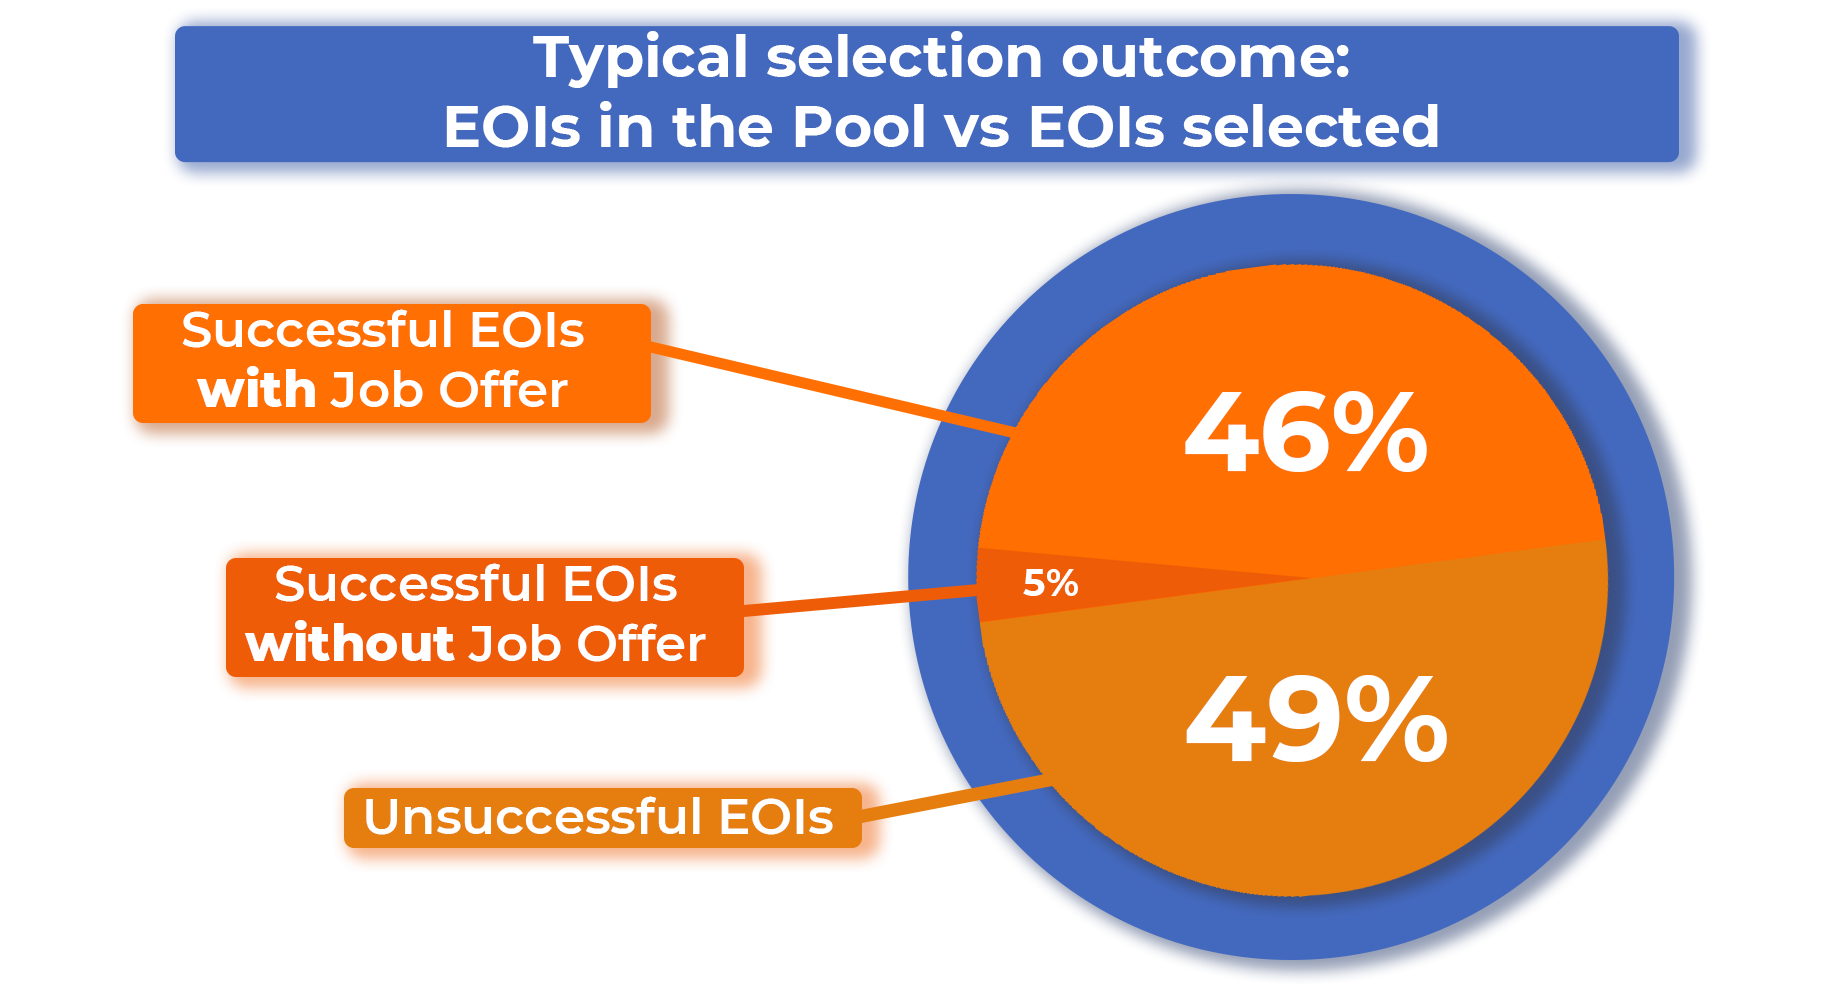 graphic of need for job offer, with most successful EOIs in the latest selection needing a job offer